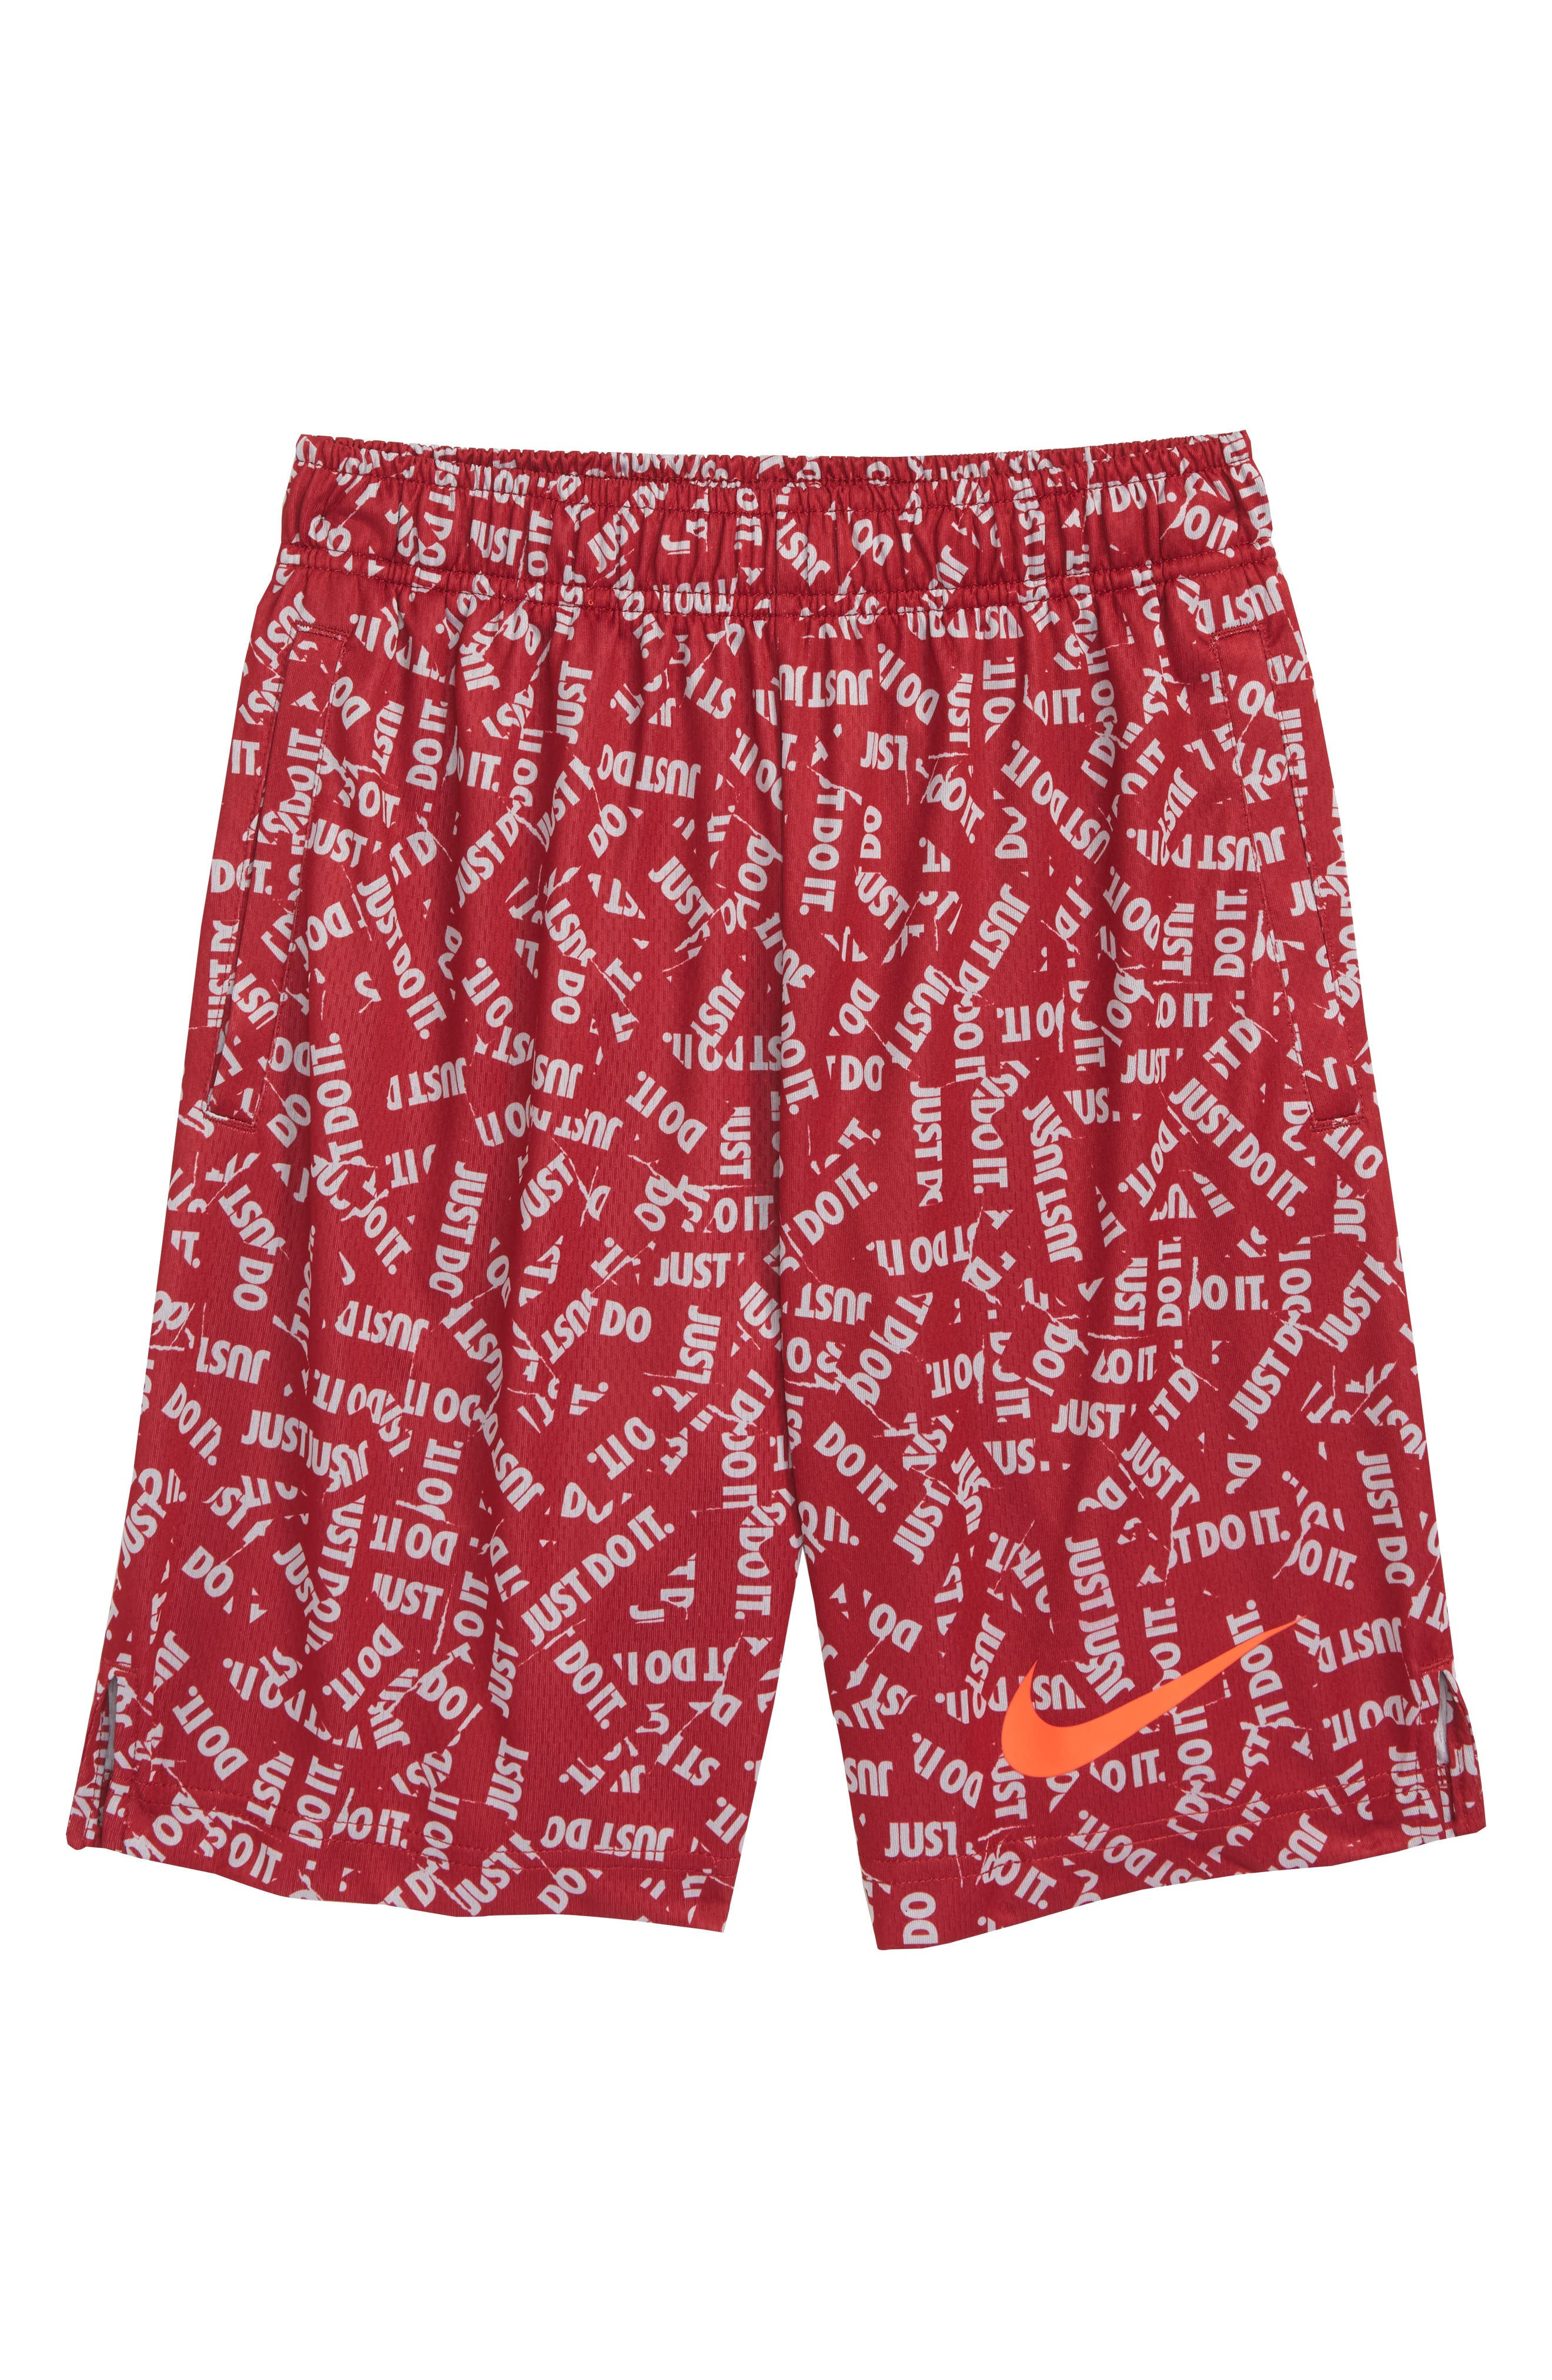 Dry Shorts,                         Main,                         color, RED CRUSH/ BRIGHT CRIMSON